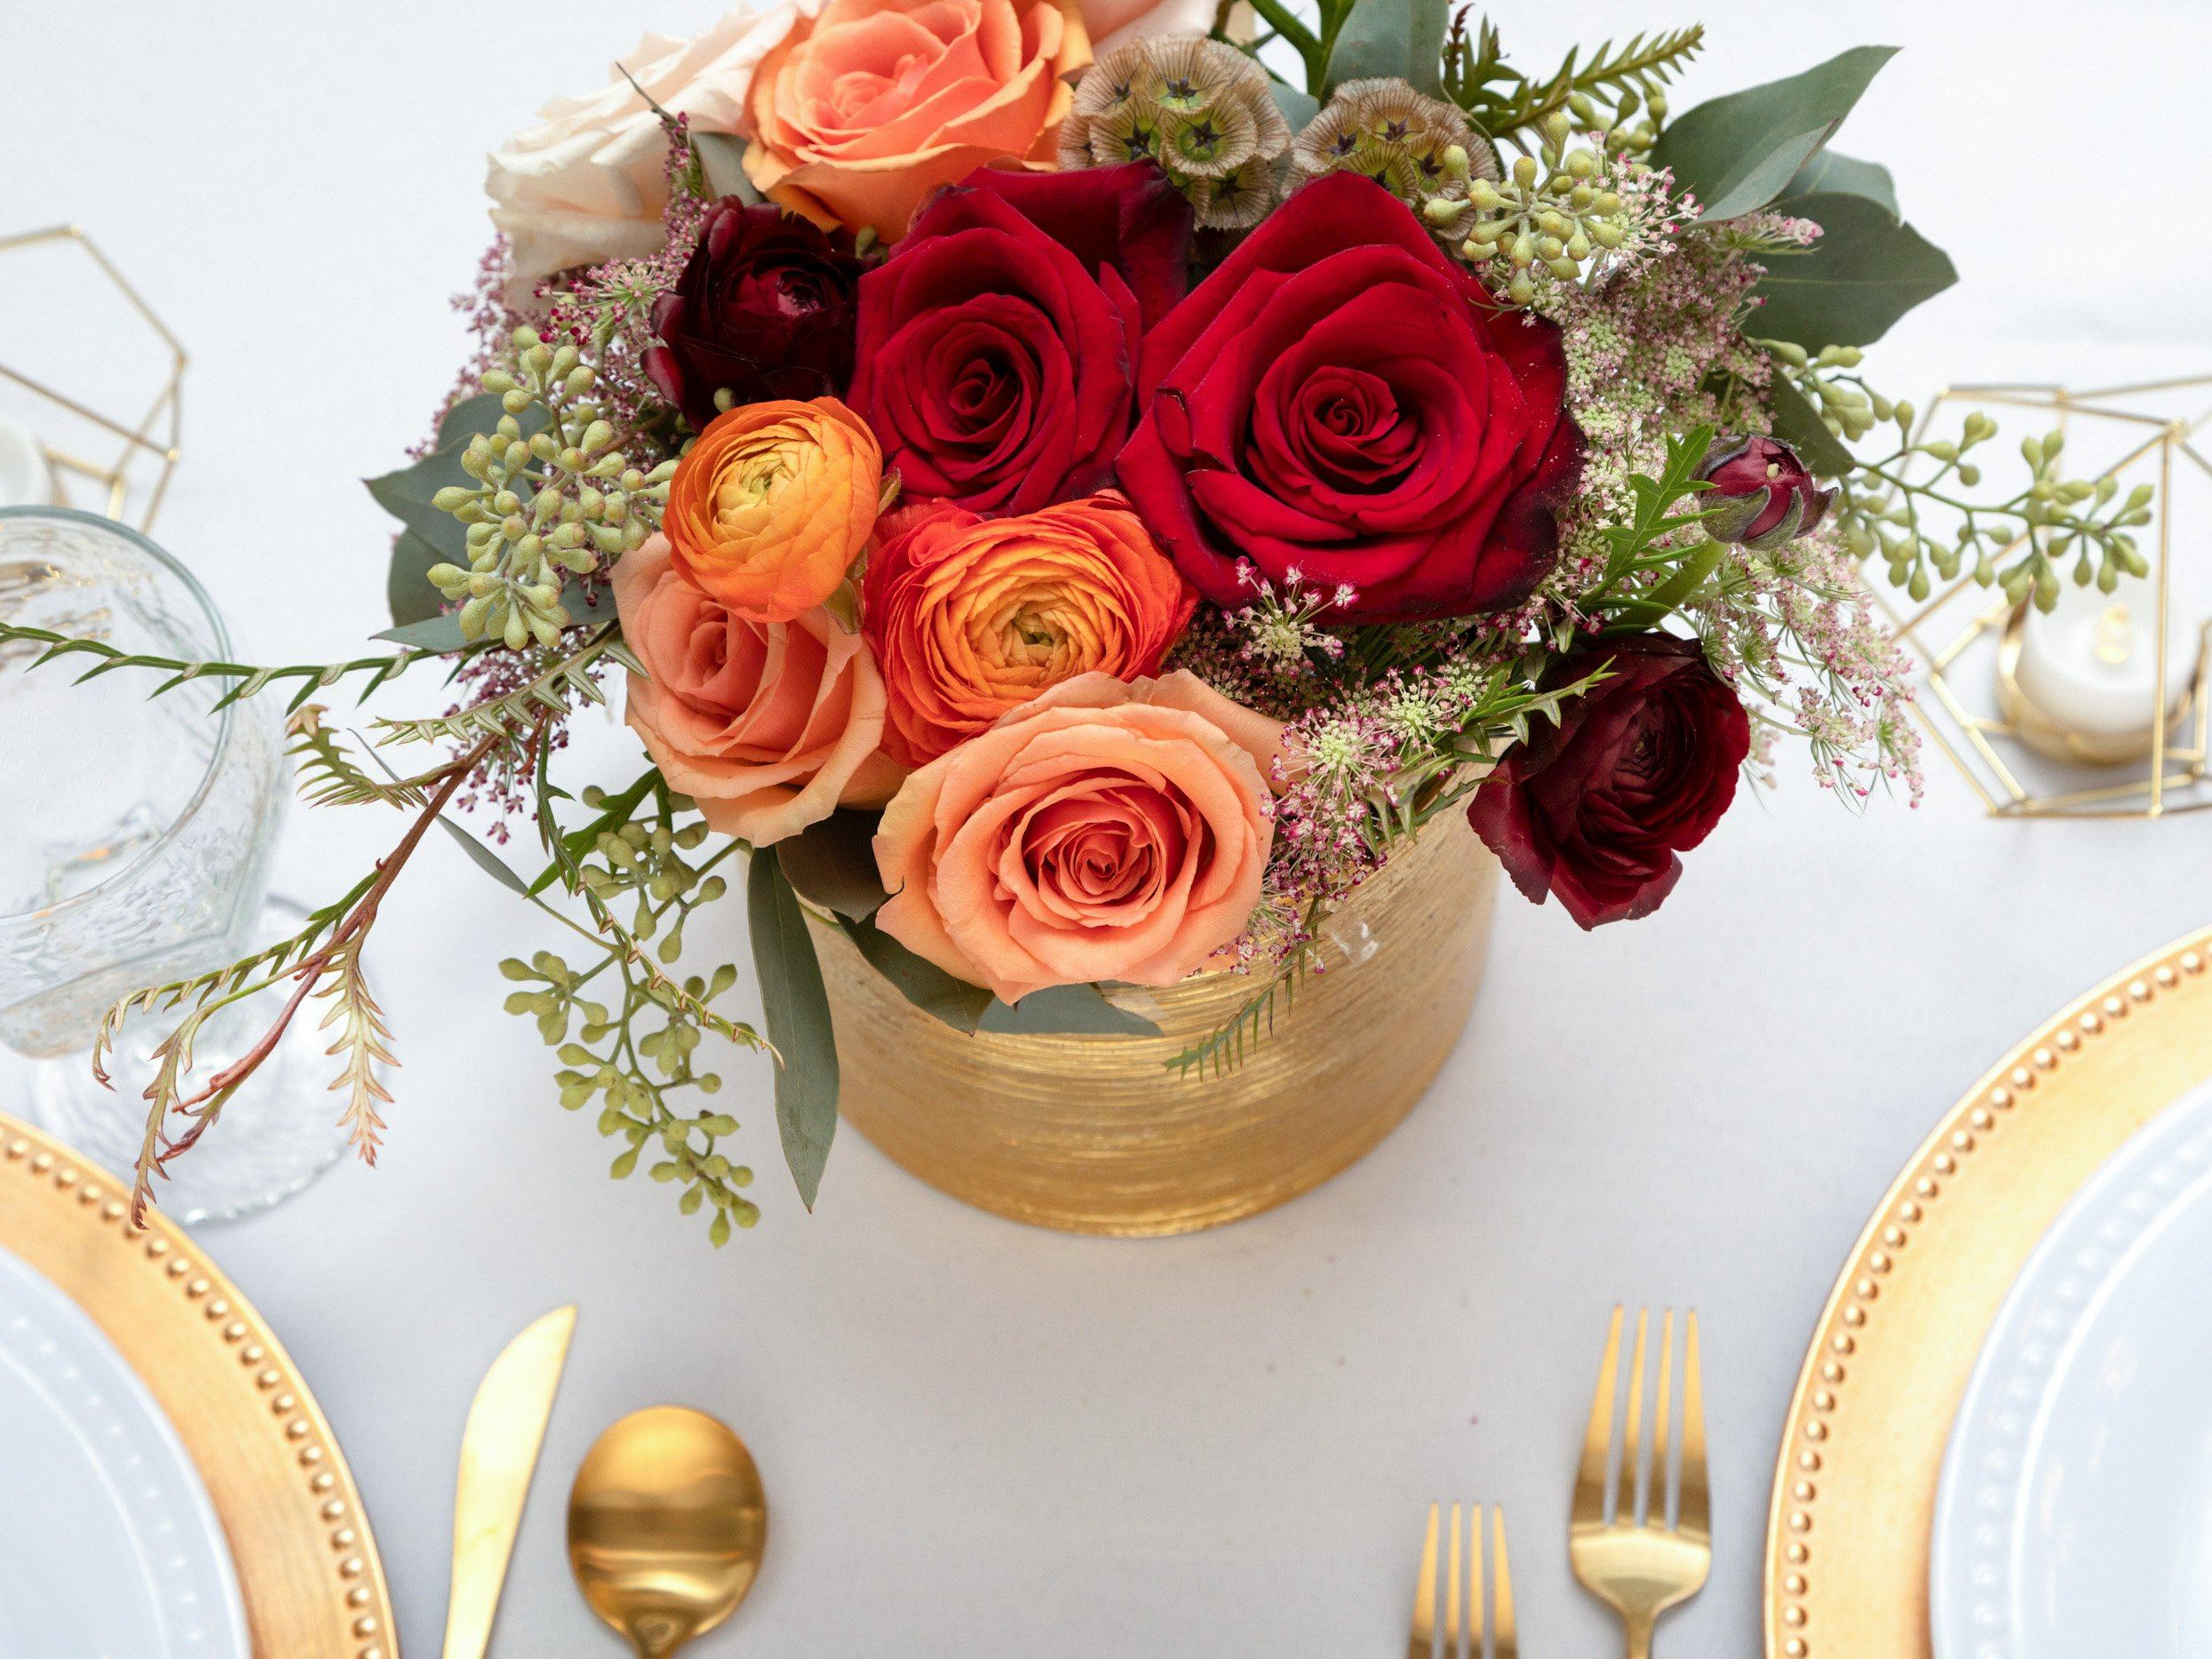 Autumn Bliss Centerpiece